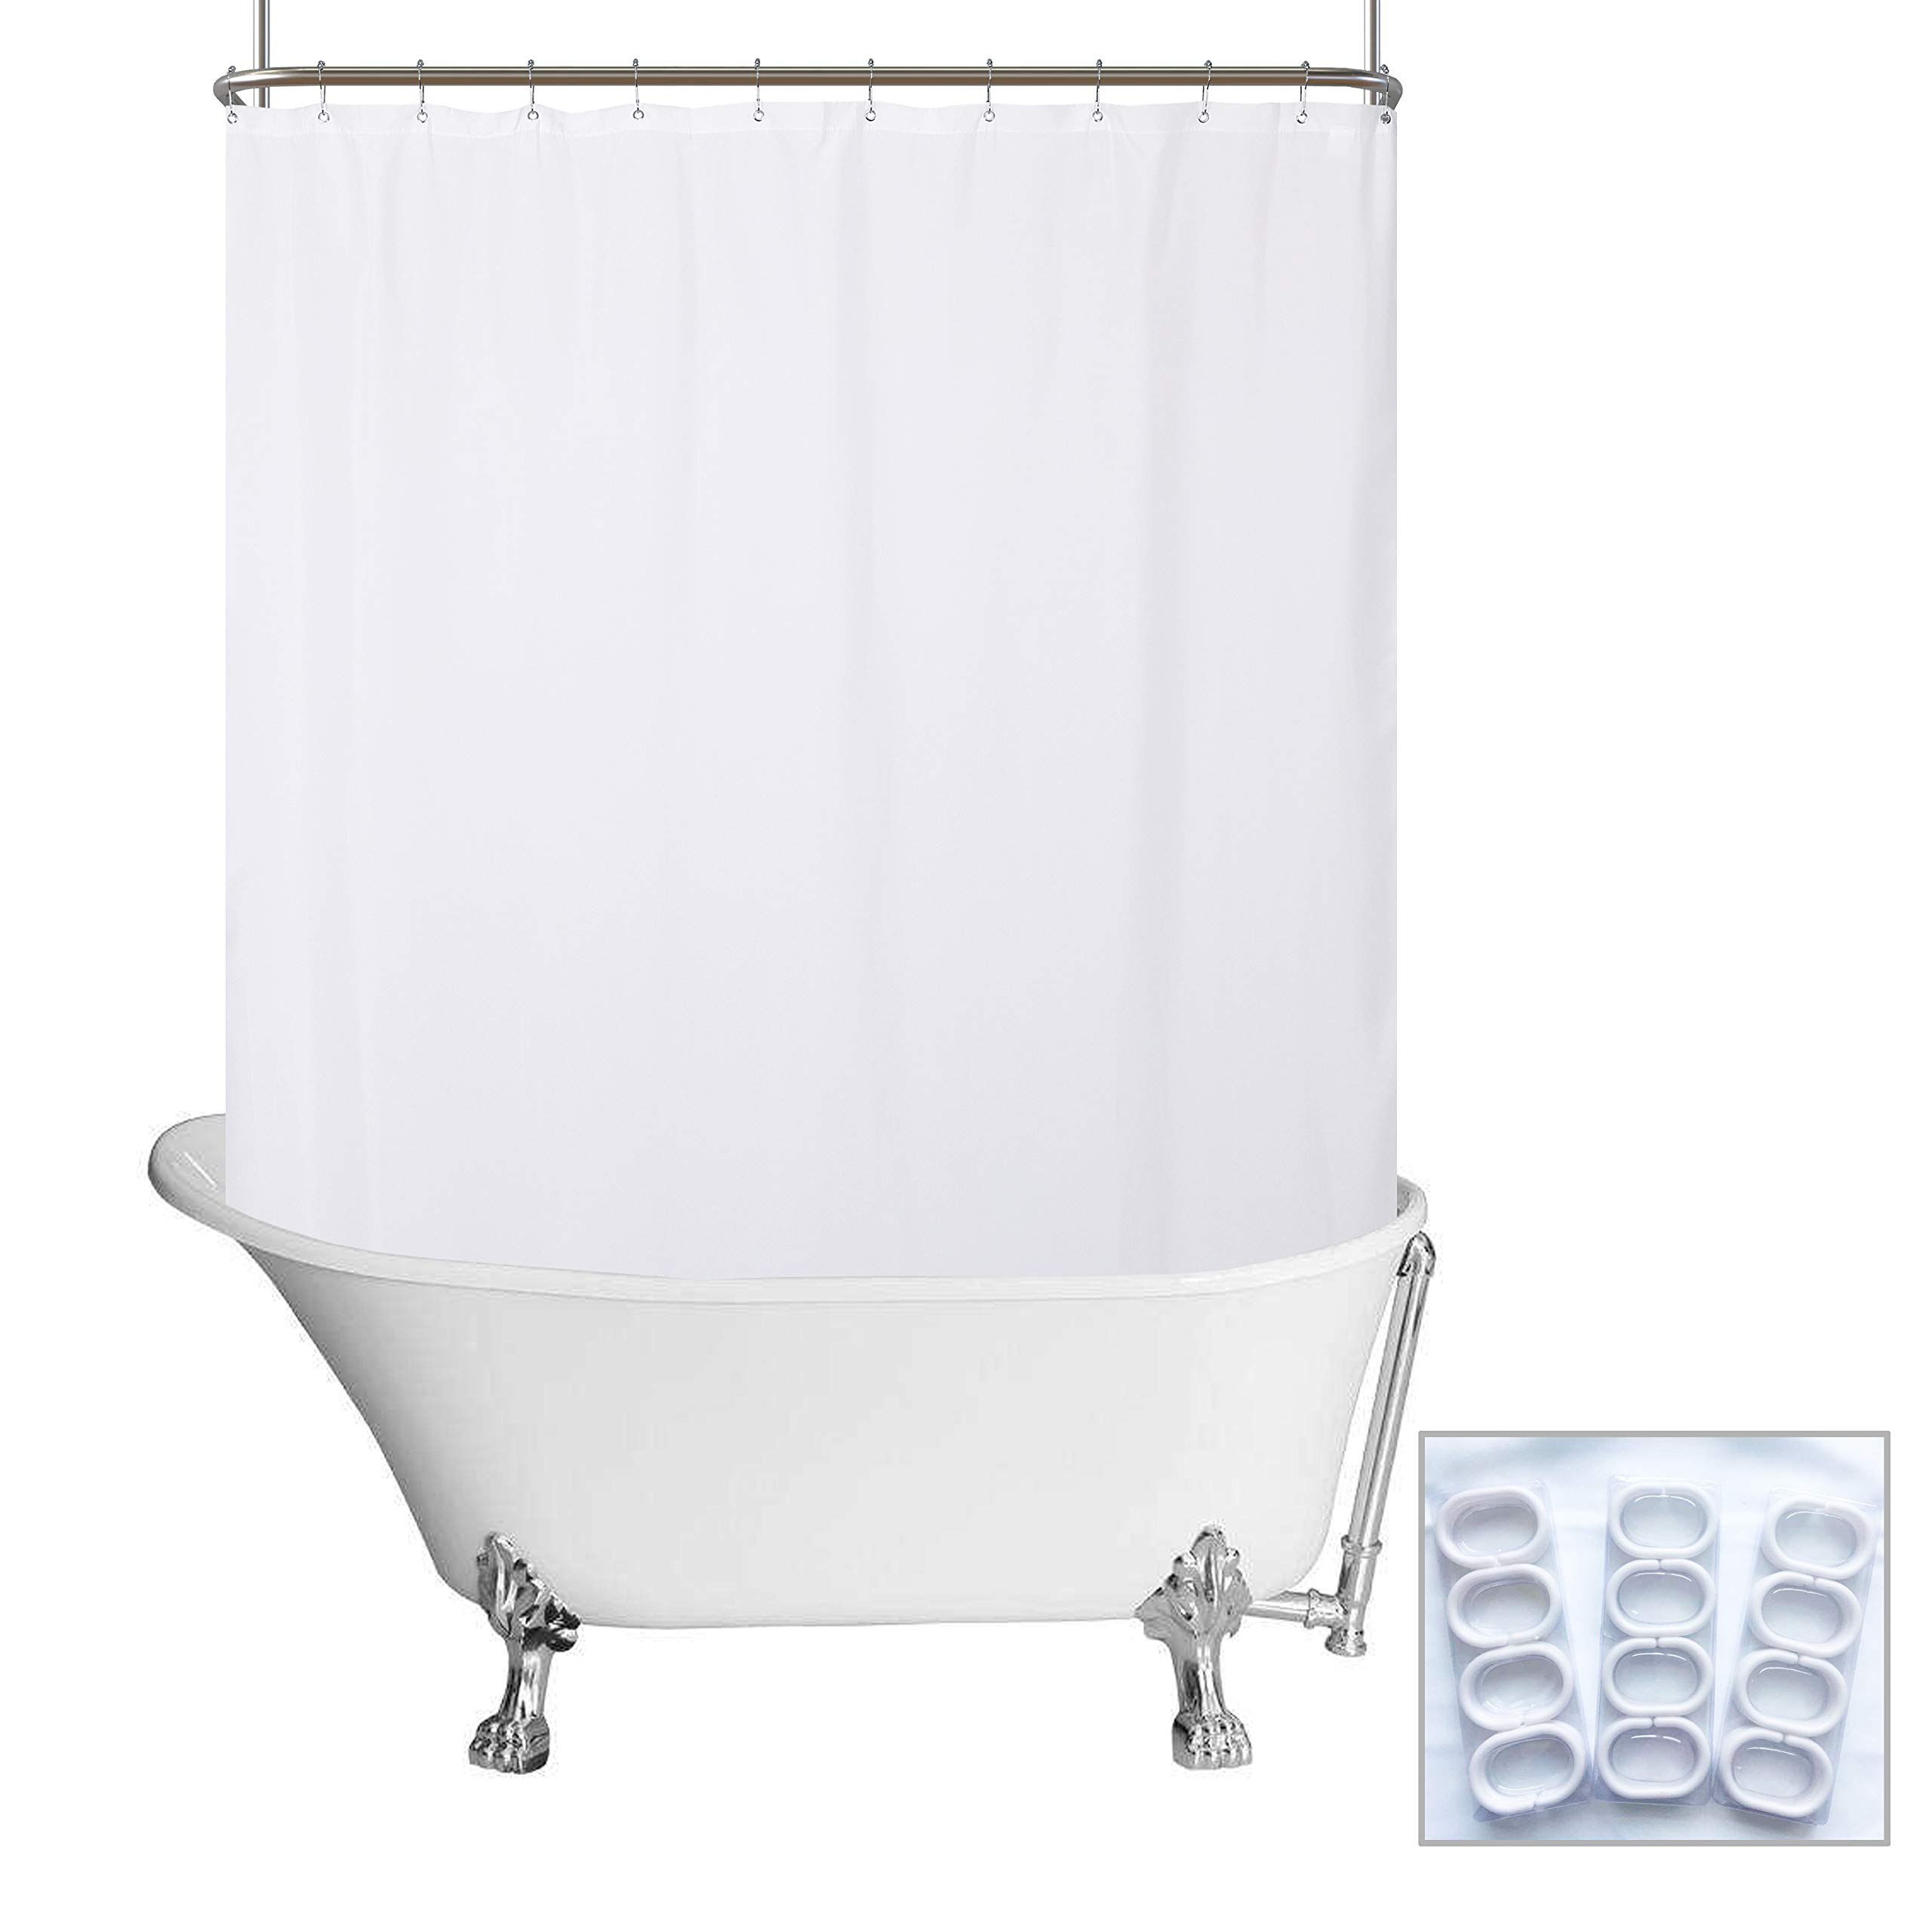 N&Y HOME Waterproof Fabric Clawfoot Tub Shower Curtain 180 x 70 inch All Wrap Around - 36 Hooks Included, Breathable Fabric, Machine Washable - White, 180x70